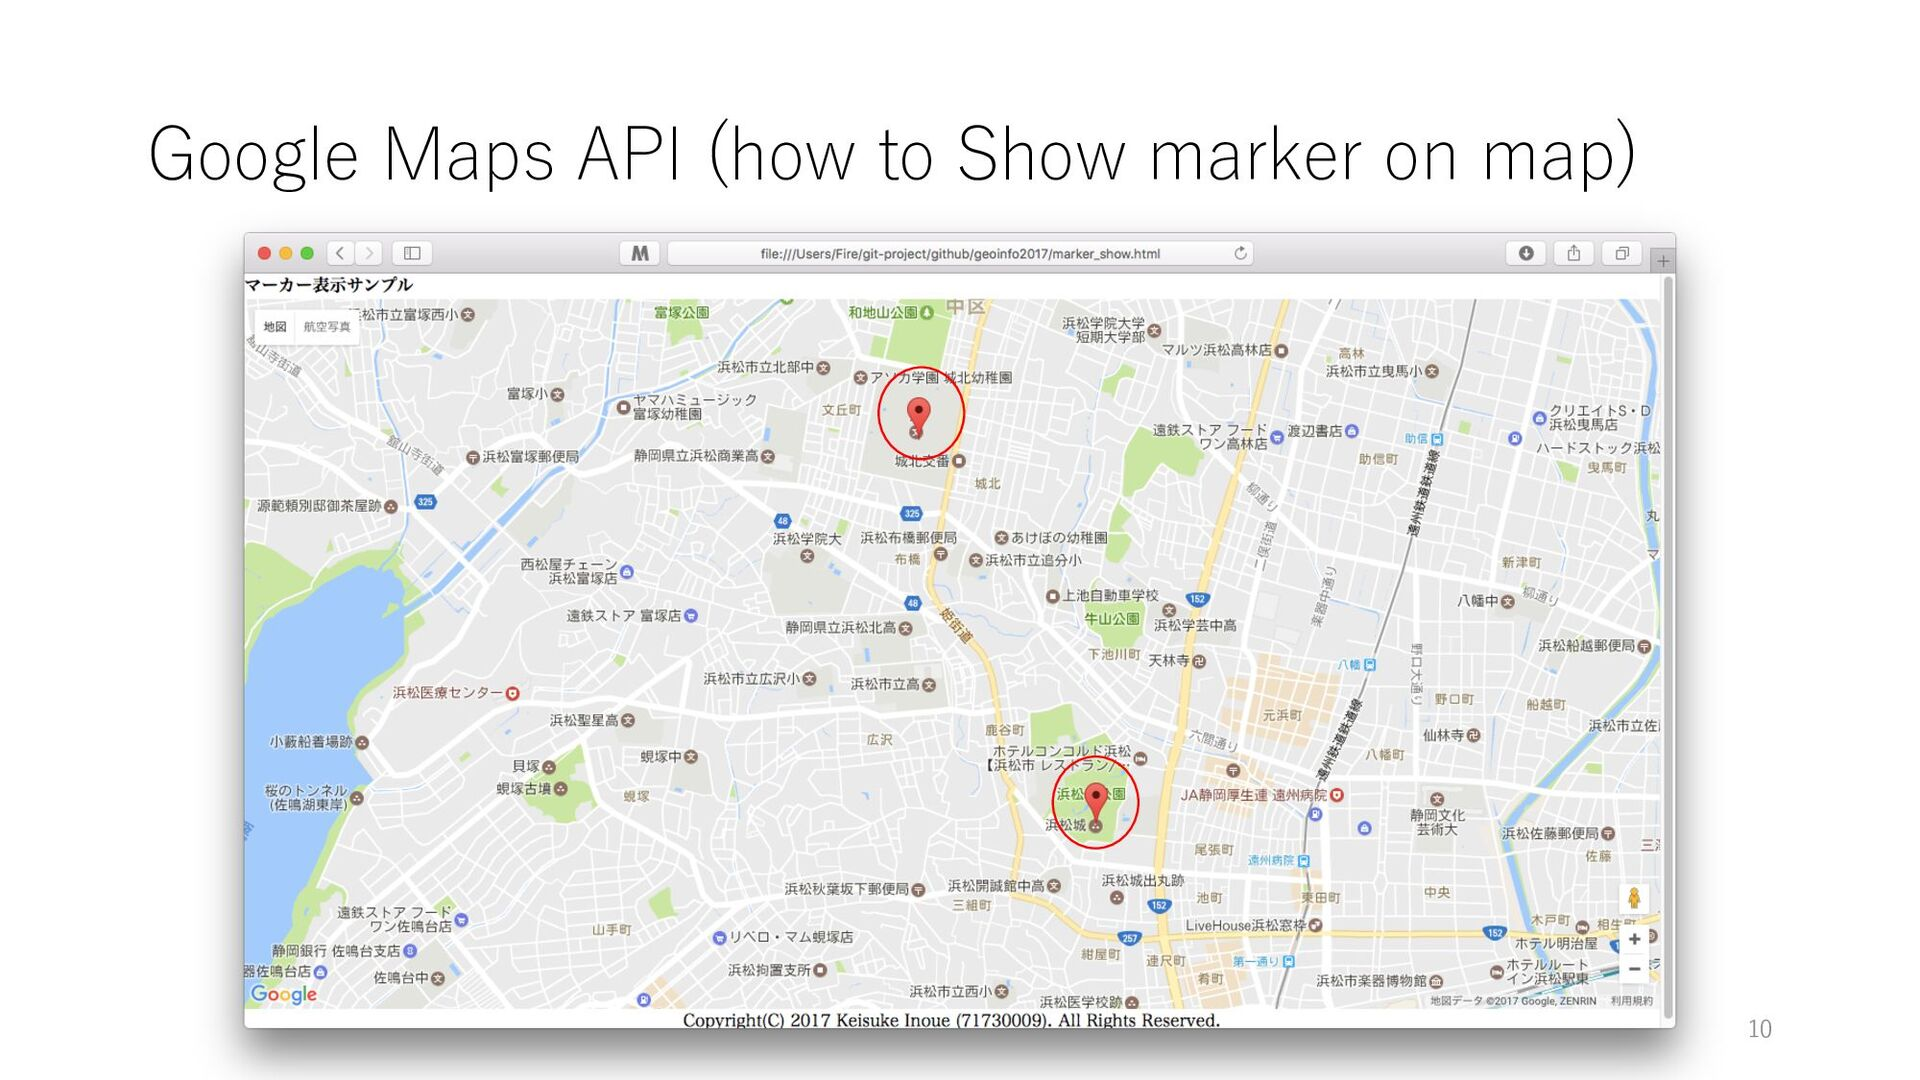 Google Maps API (how to Show marker on map) 10